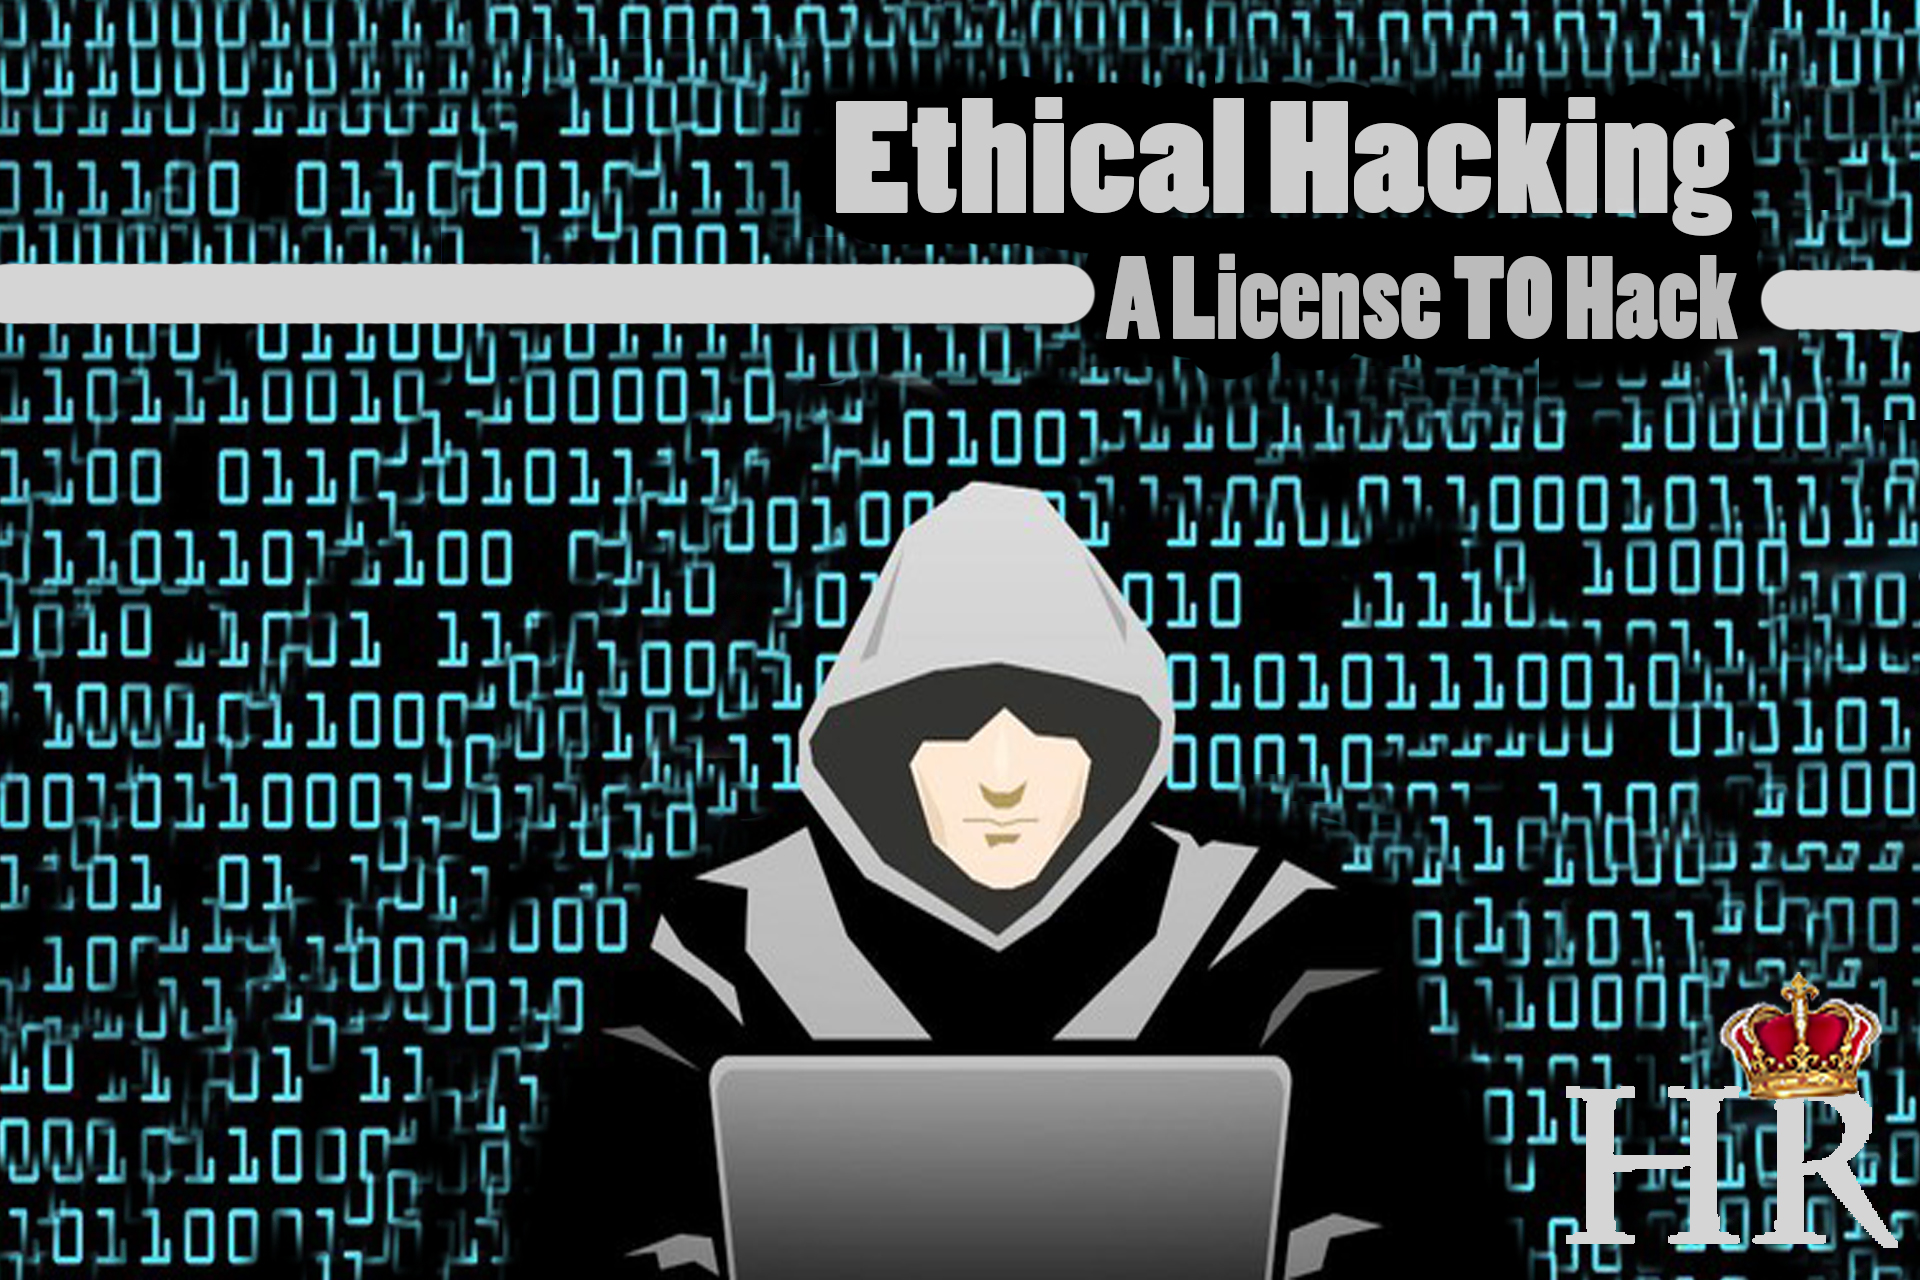 How To Prepare For Ethical Hacking  Setting Up System - HackeRoyale 71e04f1af8b7